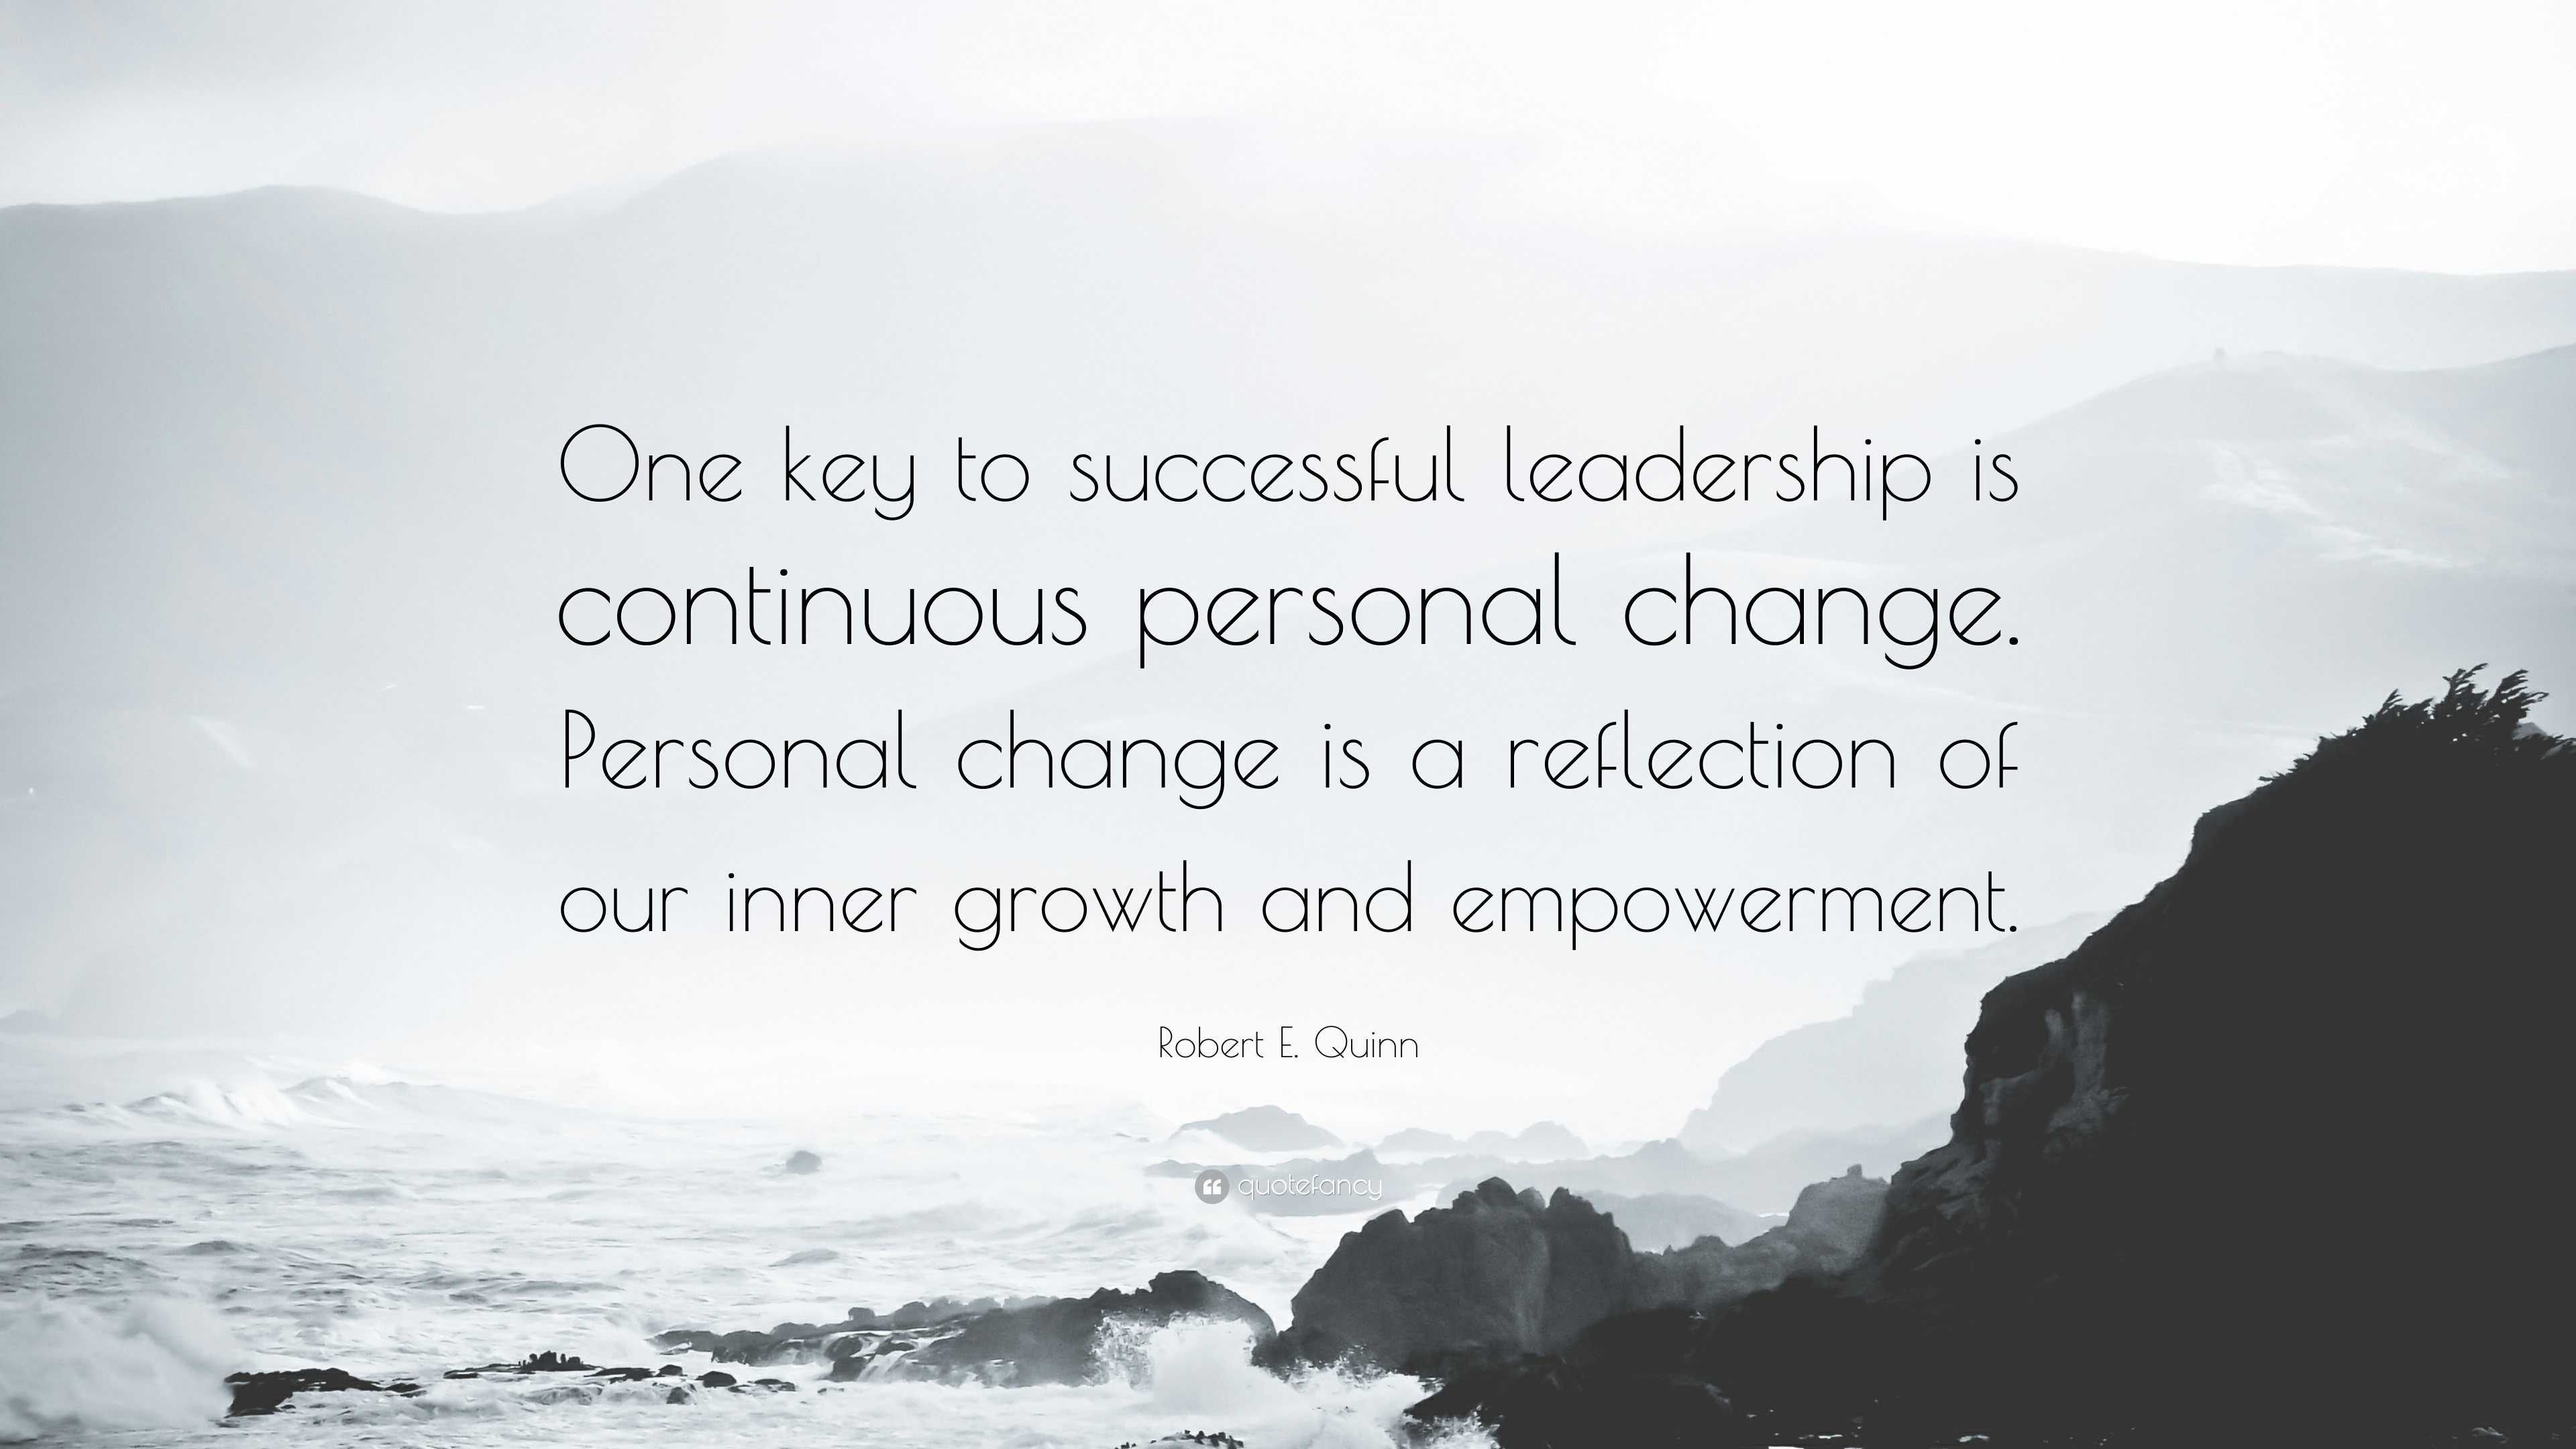 the key to successful leadership is 9 keys to successful leadershipindd 19 keys to successful leadershipindd 1 12/22/15 1:52 pm12/22/15 3:40 pm #opyrightedmaterial.